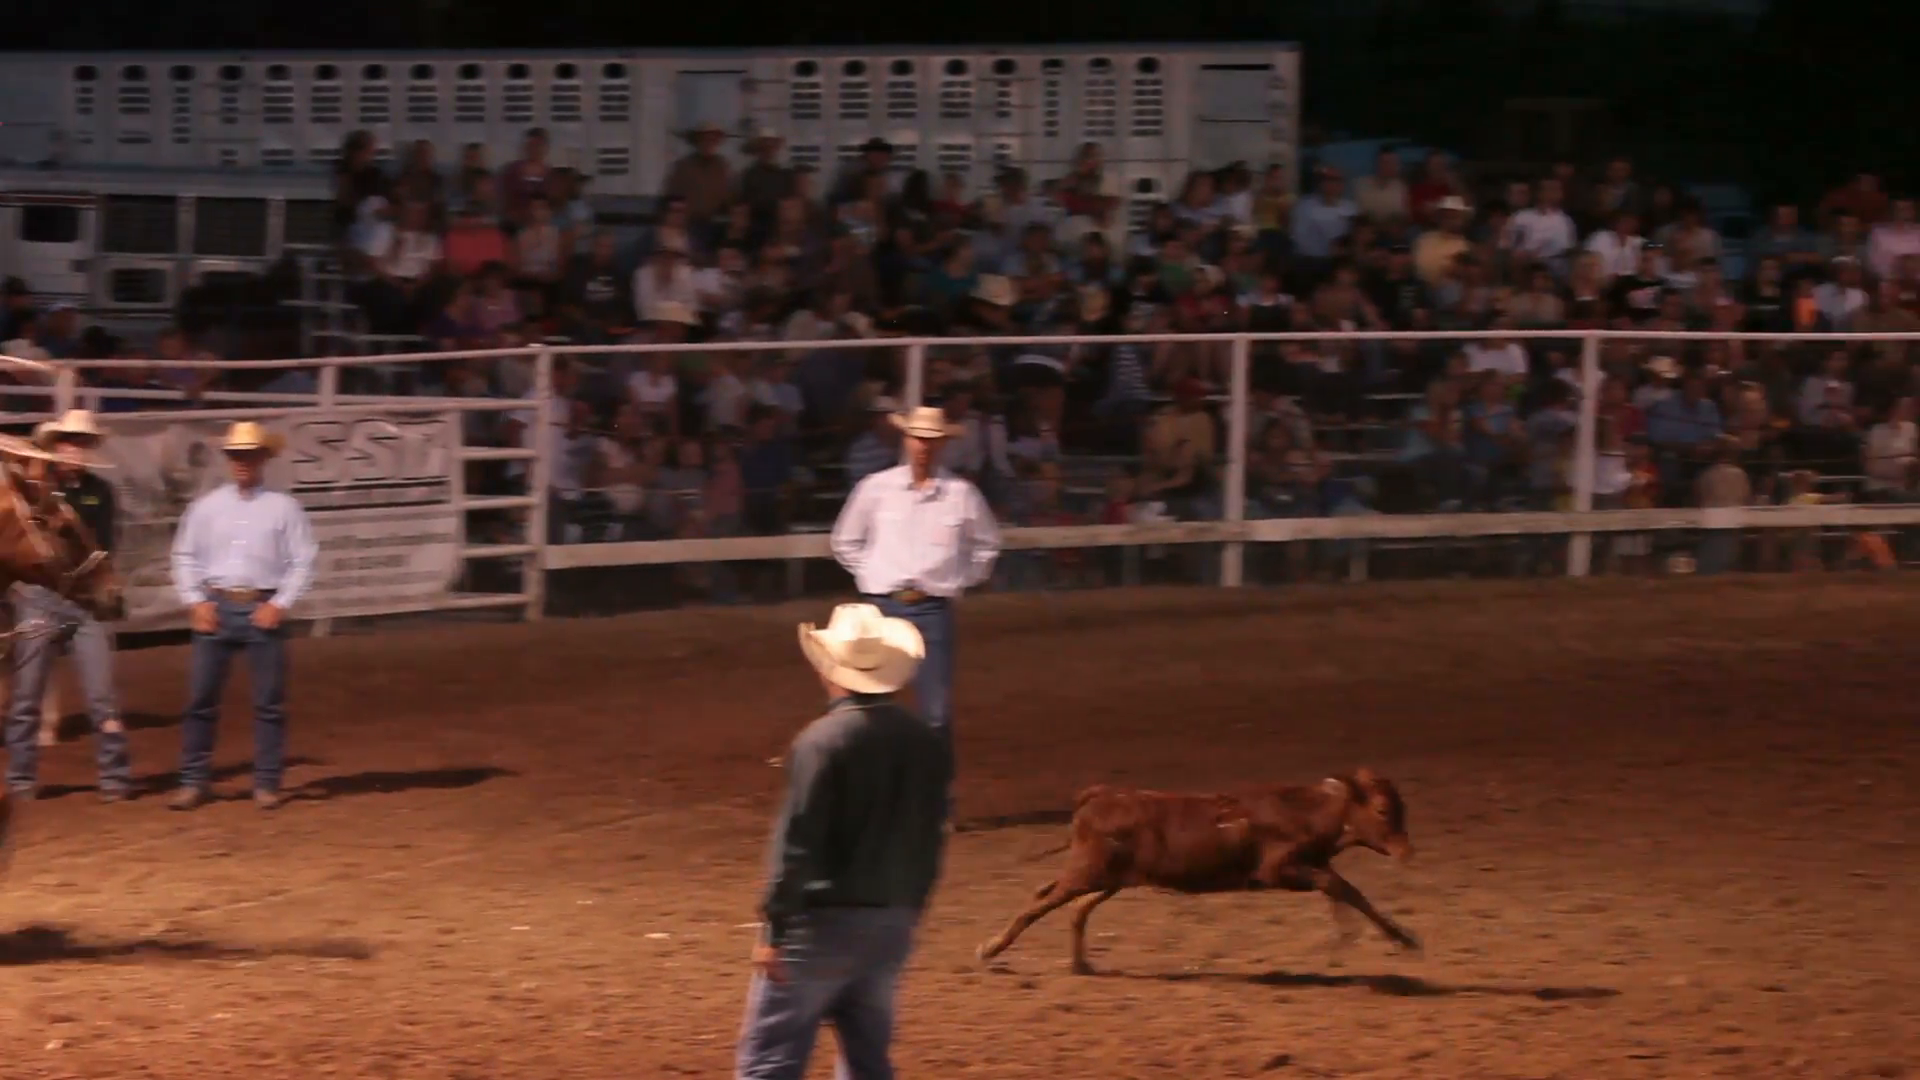 Rodeo calf roping with a young man cowboy on horse back ropes a steer then  hog ties it to win competition. Small county annual rodeo and fair. - Rodeo PNG HD